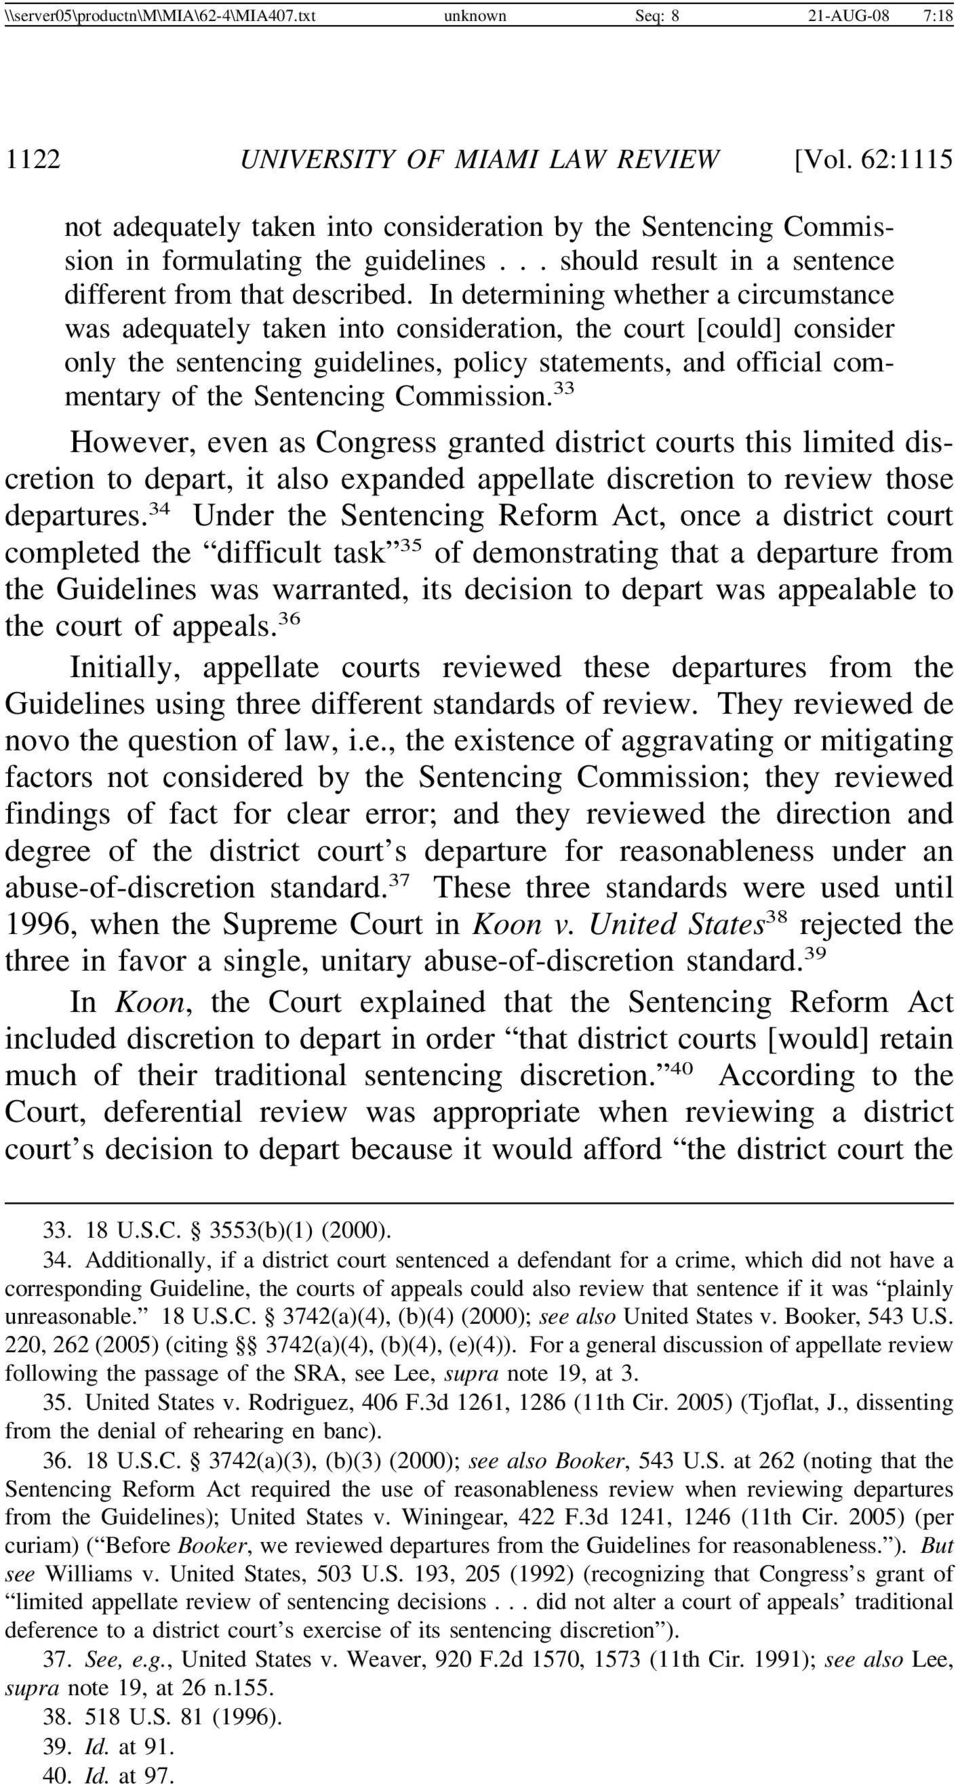 In determining whether a circumstance was adequately taken into consideration, the court [could] consider only the sentencing guidelines, policy statements, and official commentary of the Sentencing